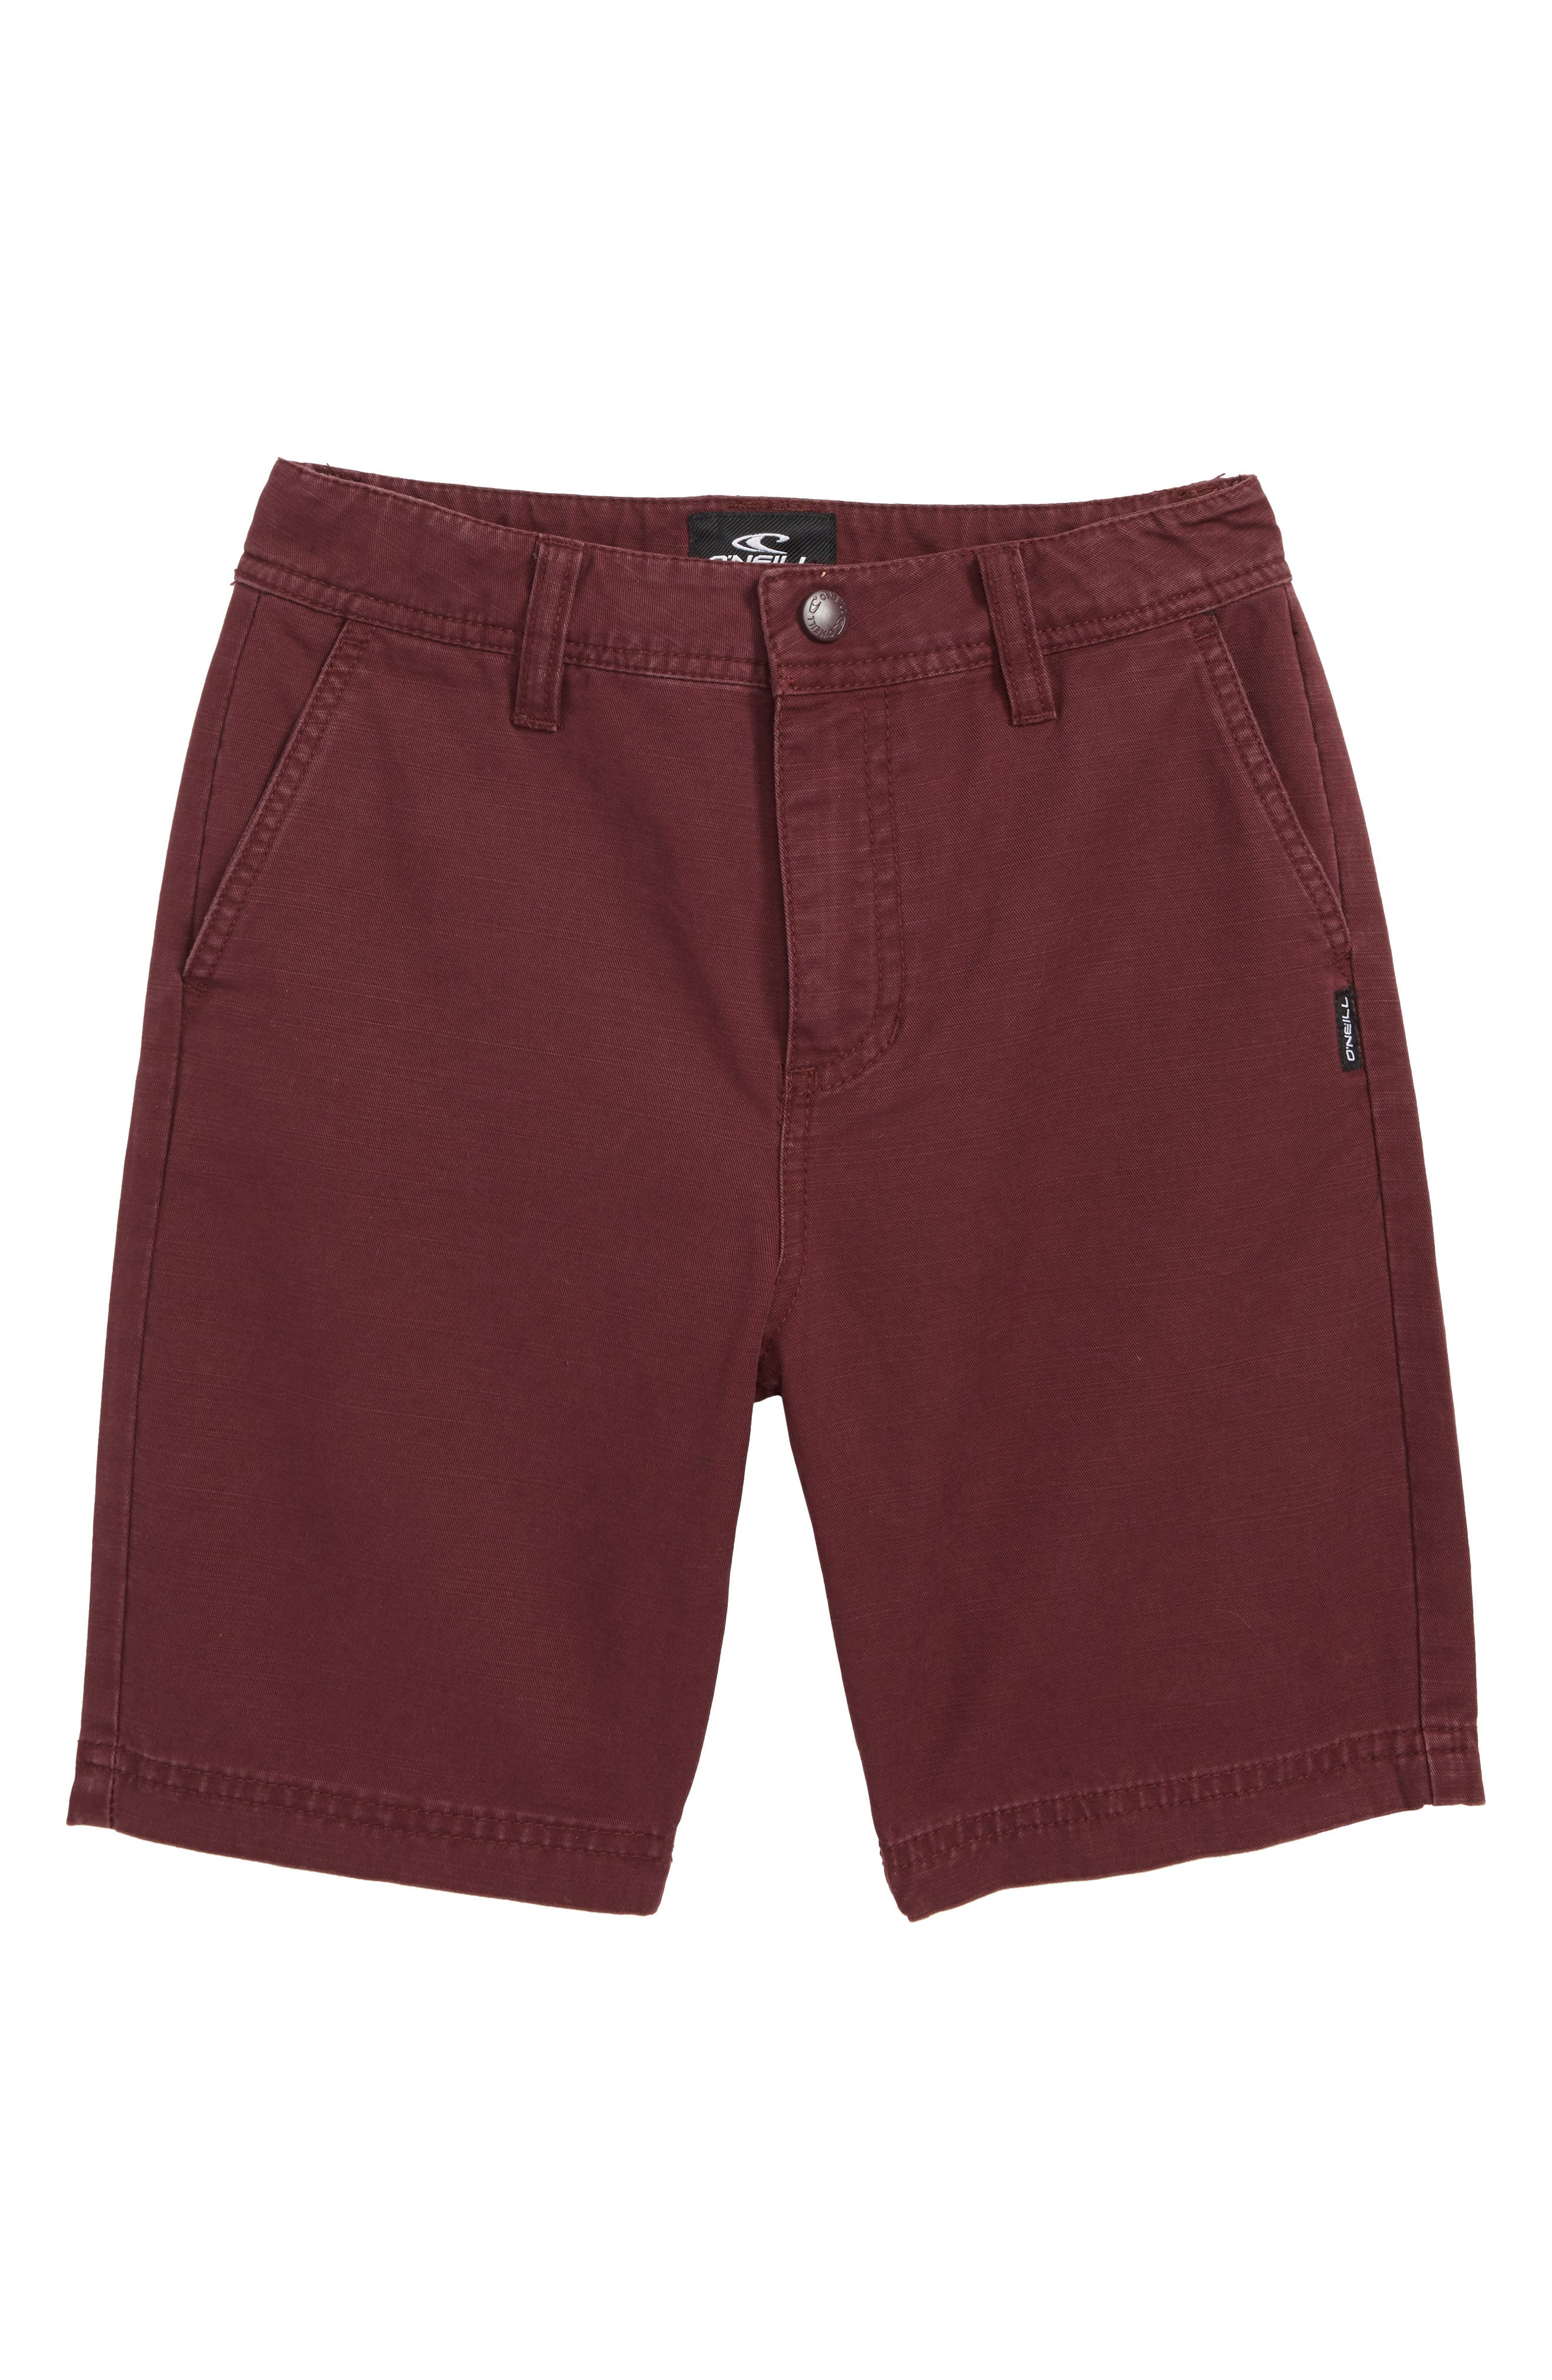 Jay Chino Shorts,                         Main,                         color, Wine